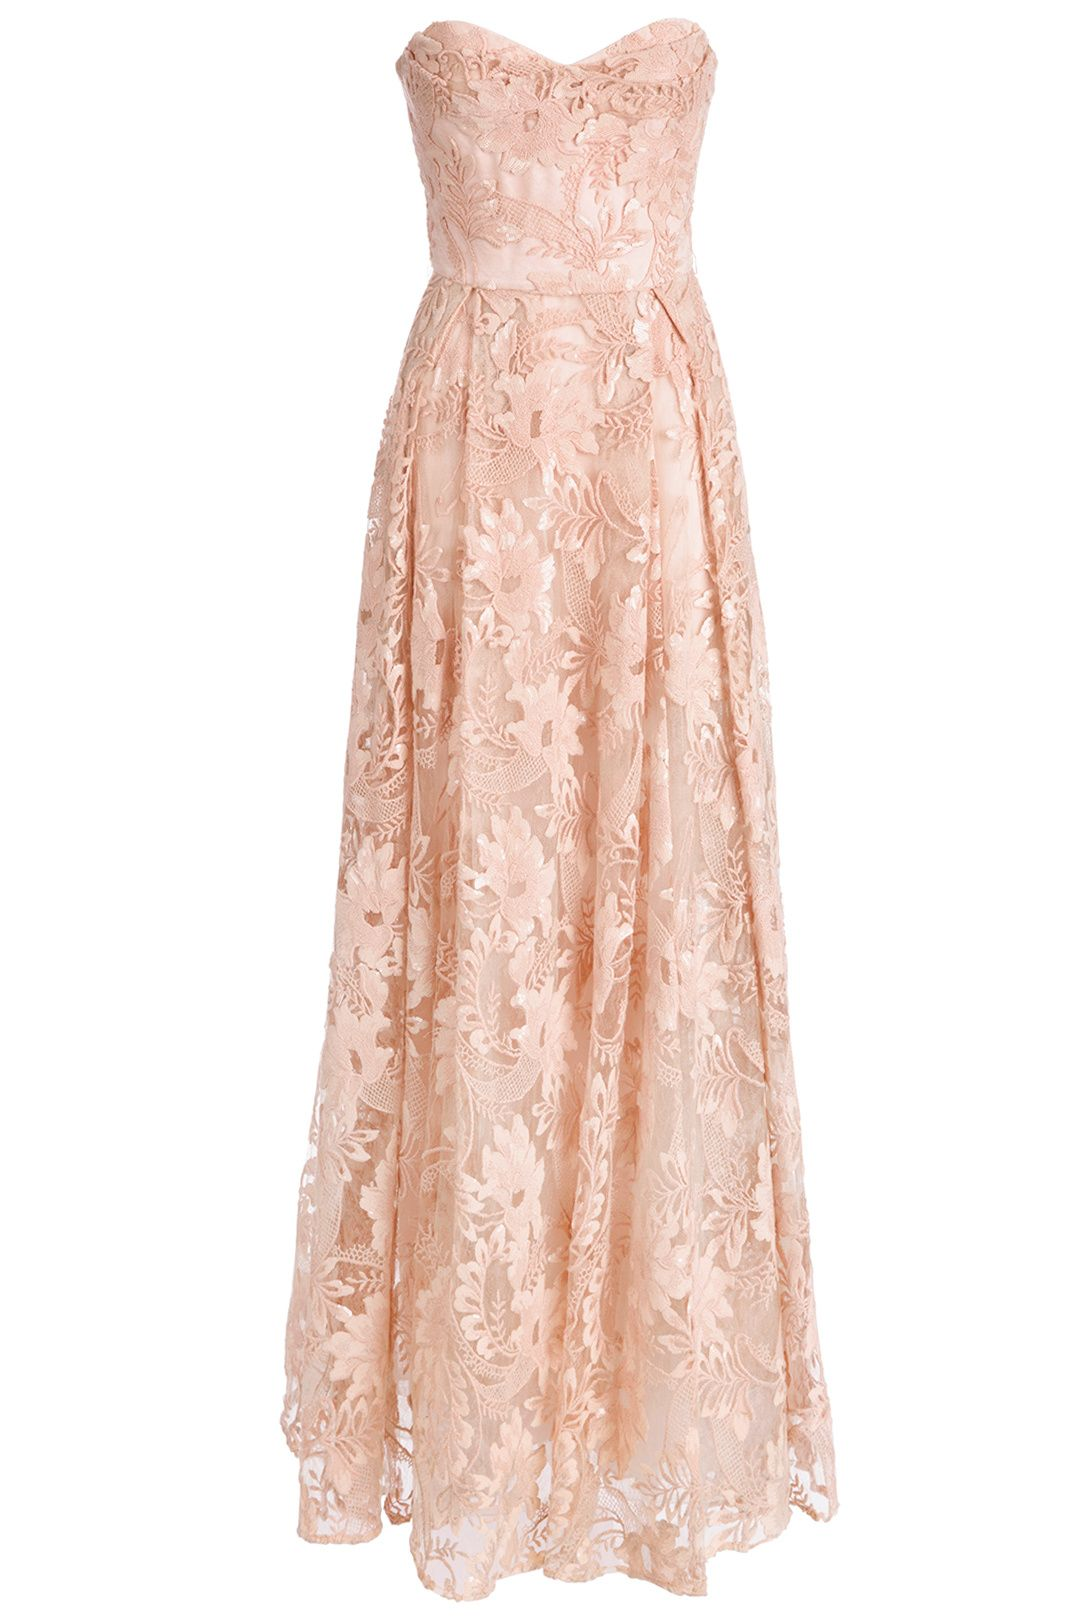 Eden Gown | Marchesa, Gowns and Prom